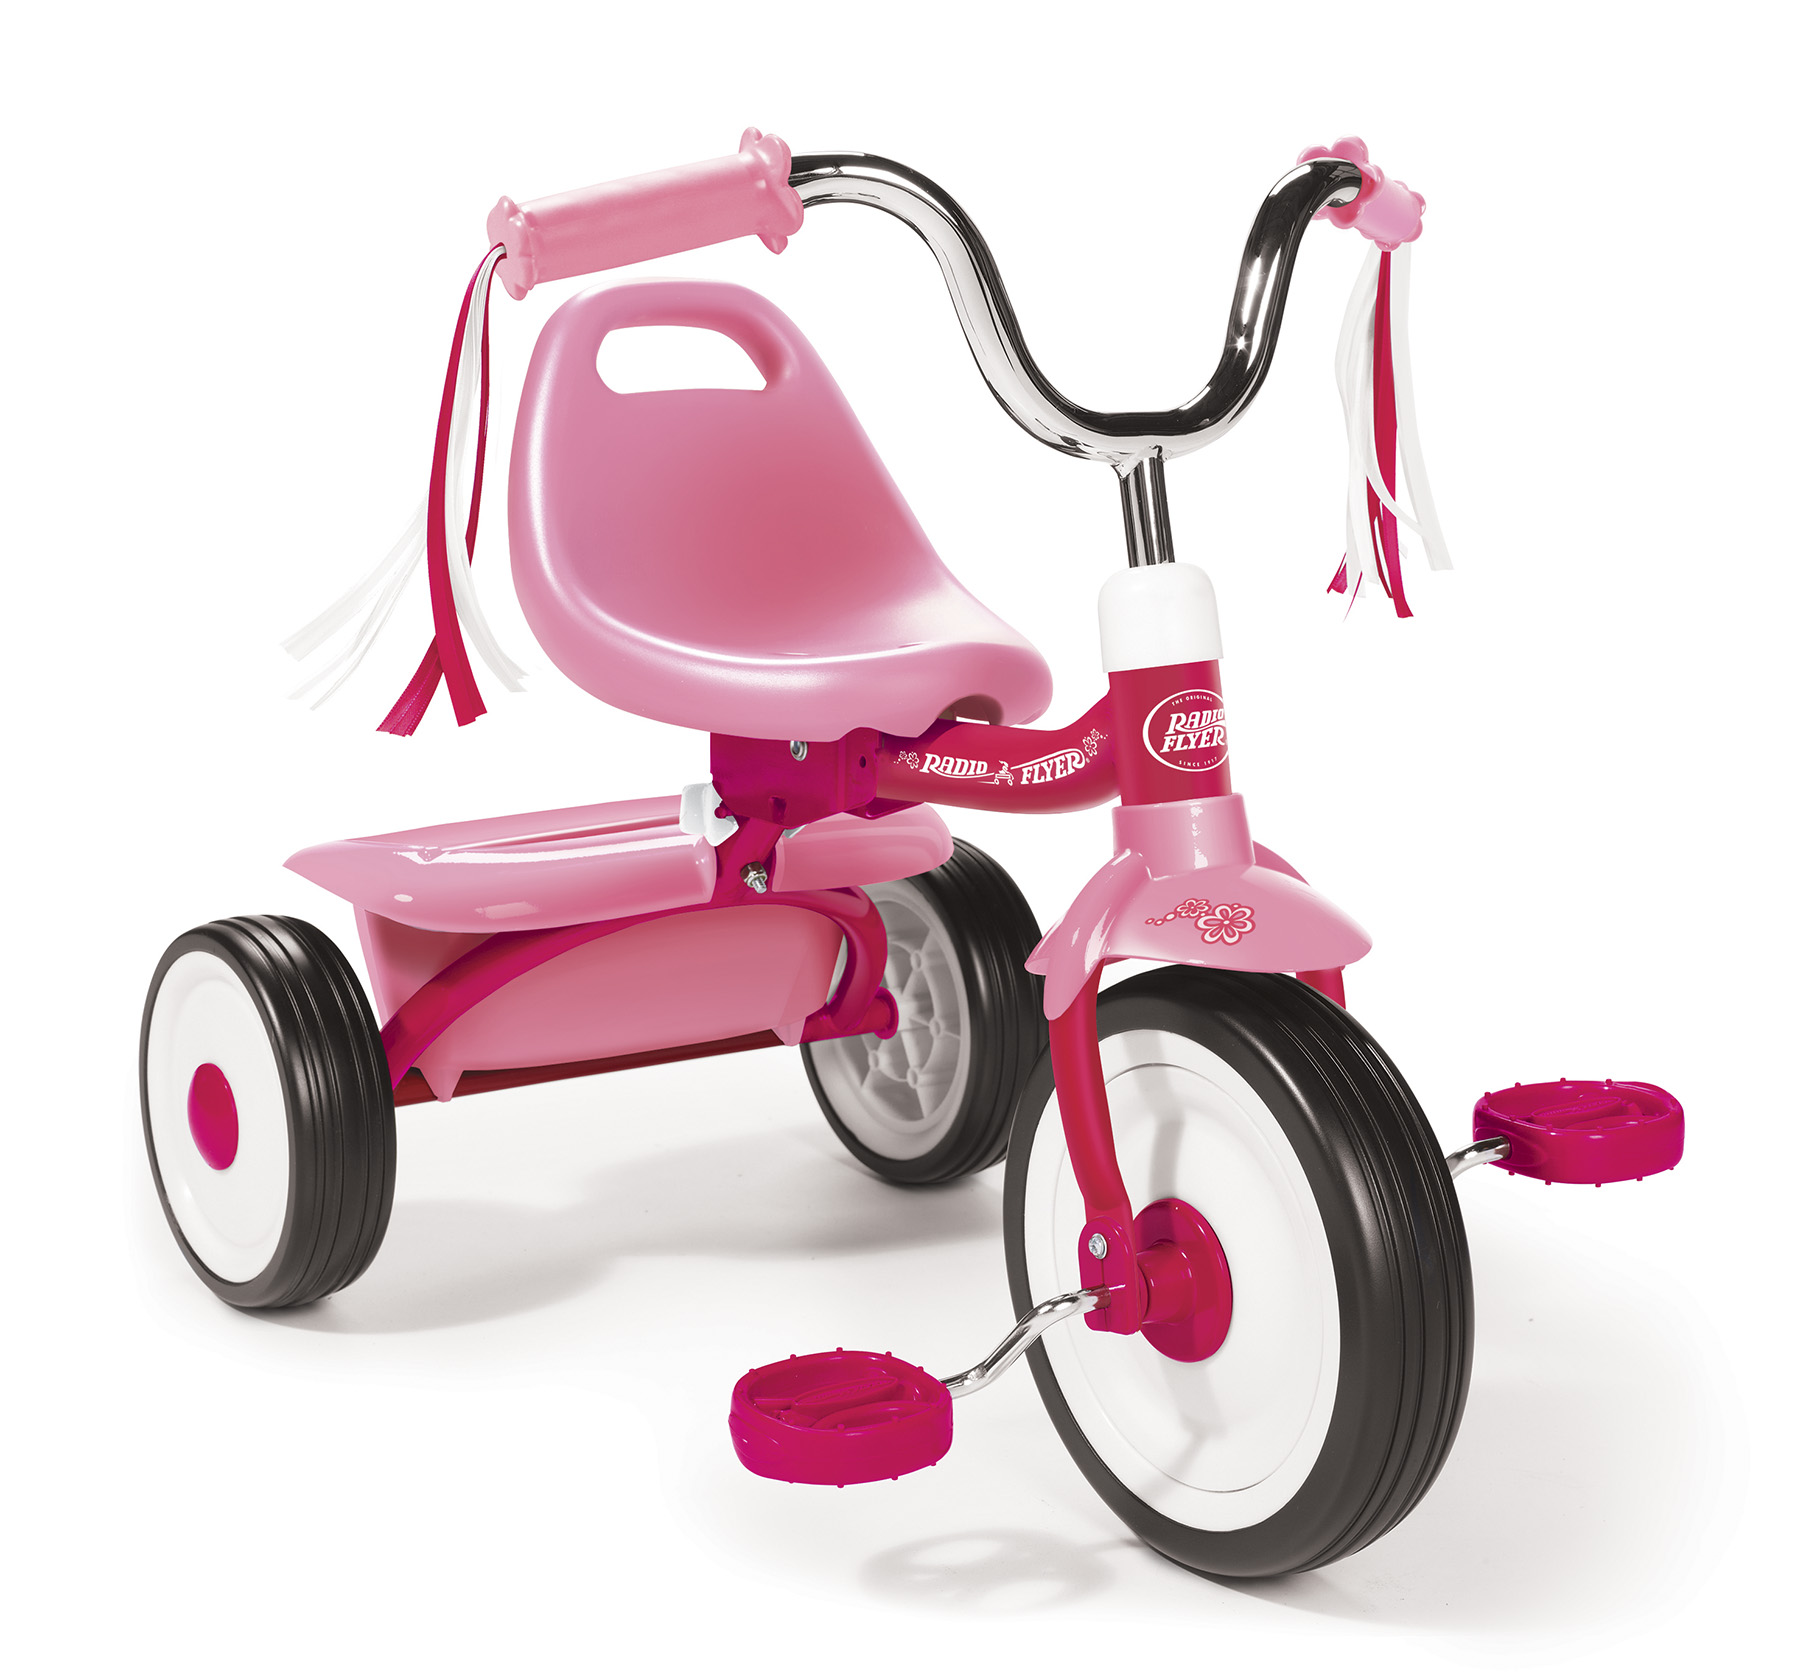 Model 411P Ready to Ride Folding Trike - Pink